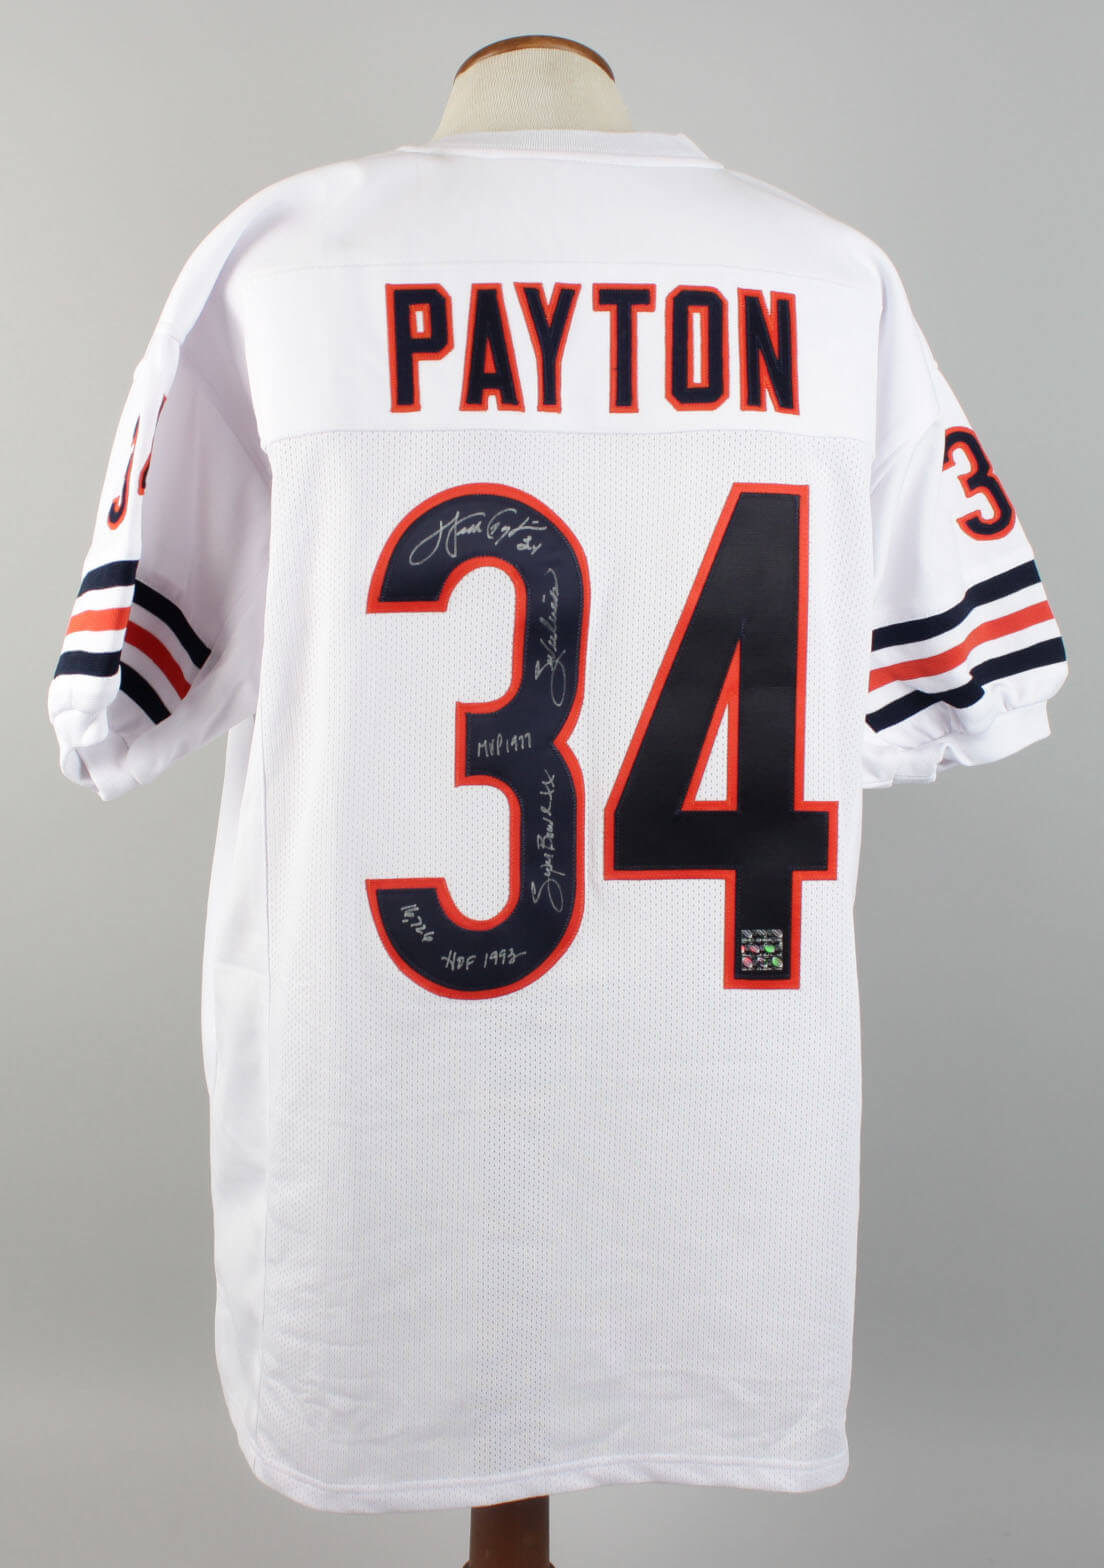 finest selection 011ca 9dce1 Chicago Bears - Walter Payton Signed & Inscribed Jersey - PSA/DNA Full LOA